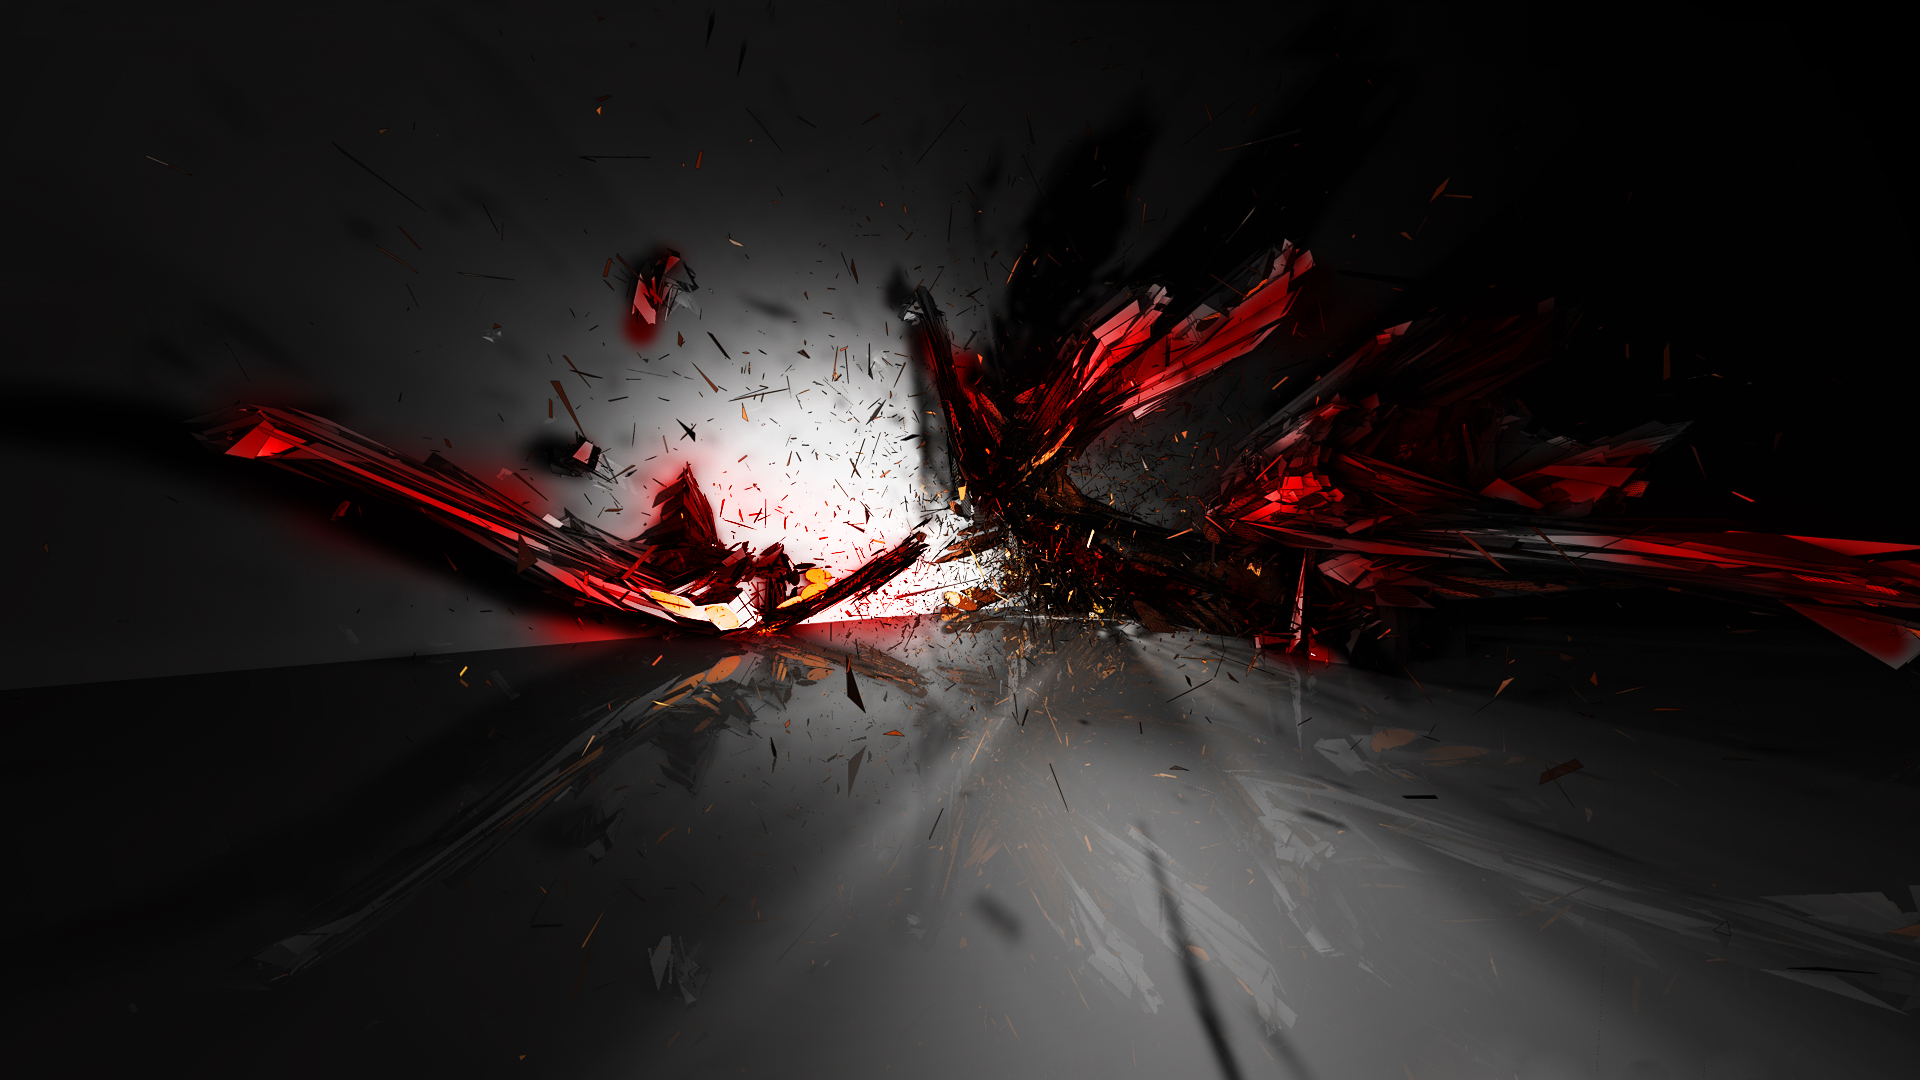 Red Abstract 3d Design Wallpaper 1586 Wallpaper WallpapersTubecom 1920x1080